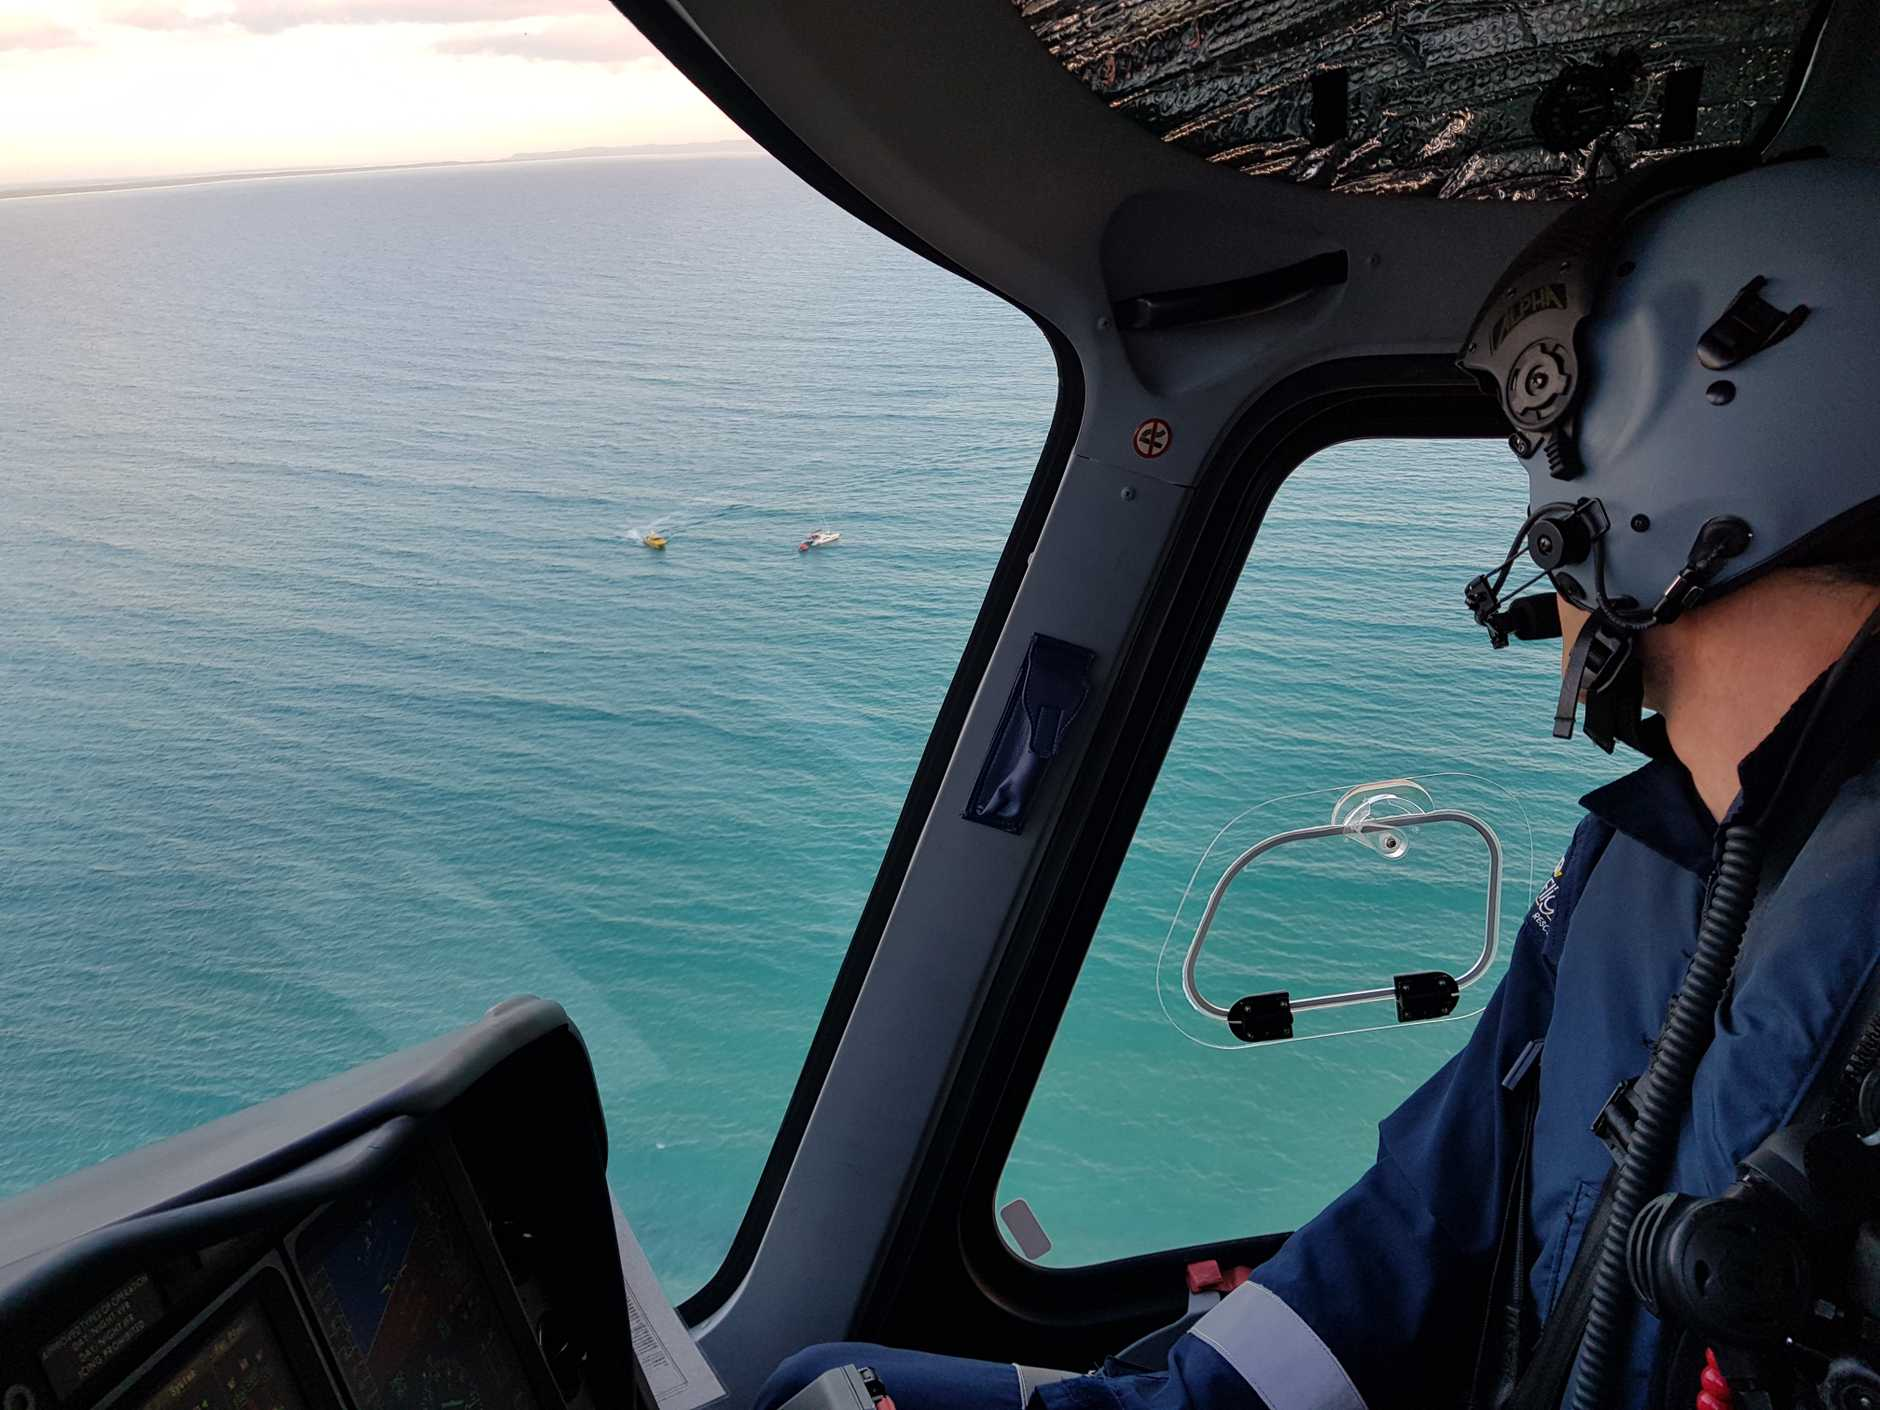 The Sunshine Coast-based RACQ LifeFlight rescue helicopter was tasked early this morning to Wolf Rock, off Double Island Point, where three men were rescued from a fishing charter.